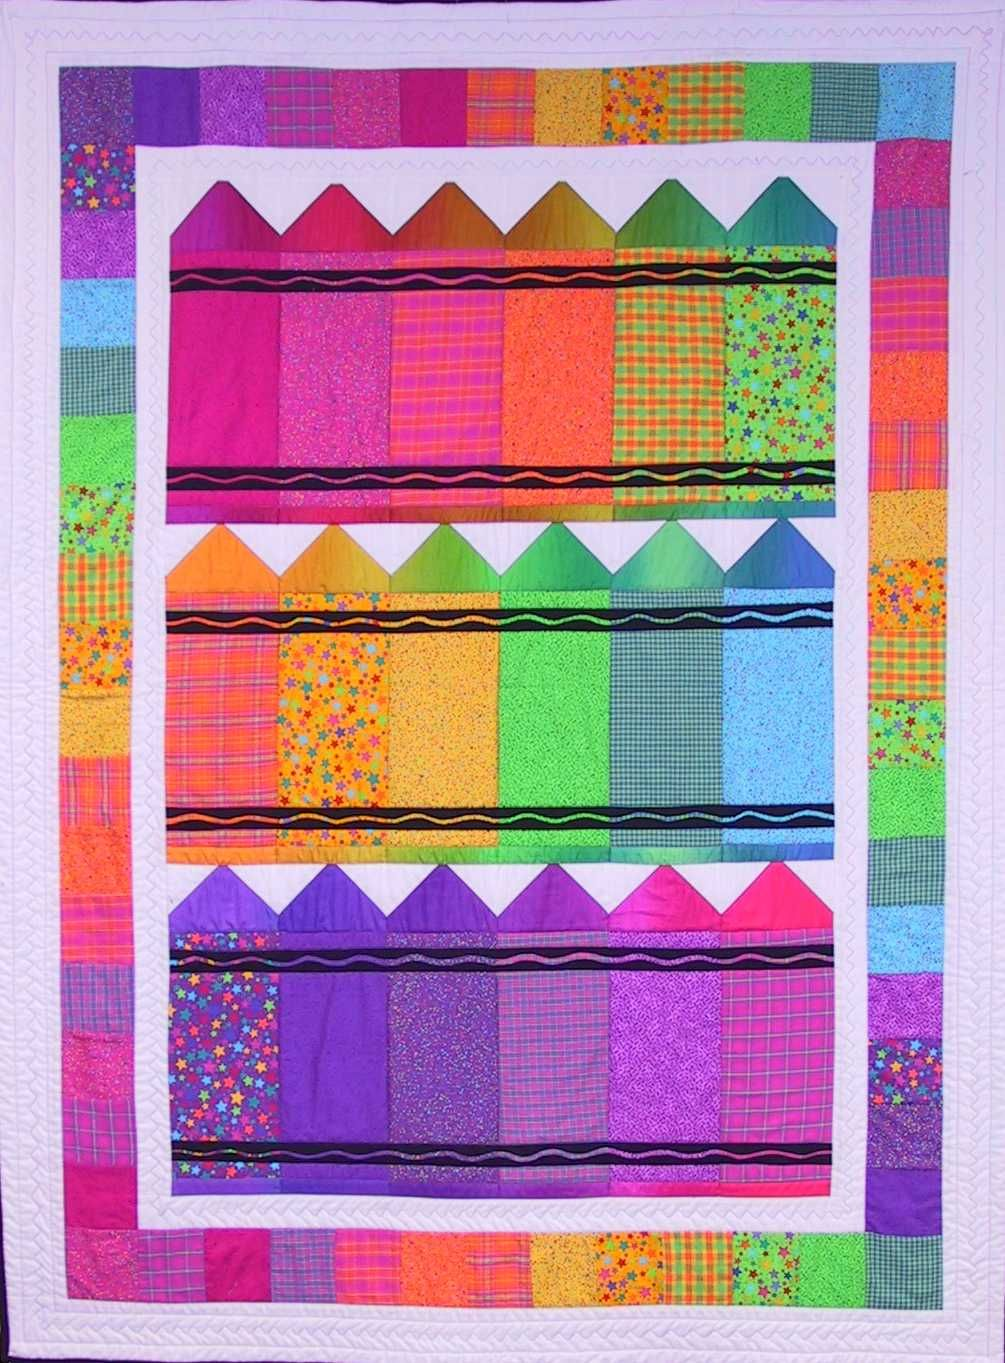 Many different quilt patterns shown here on Quiltbug.com WOW! DL ... : different quilting patterns - Adamdwight.com